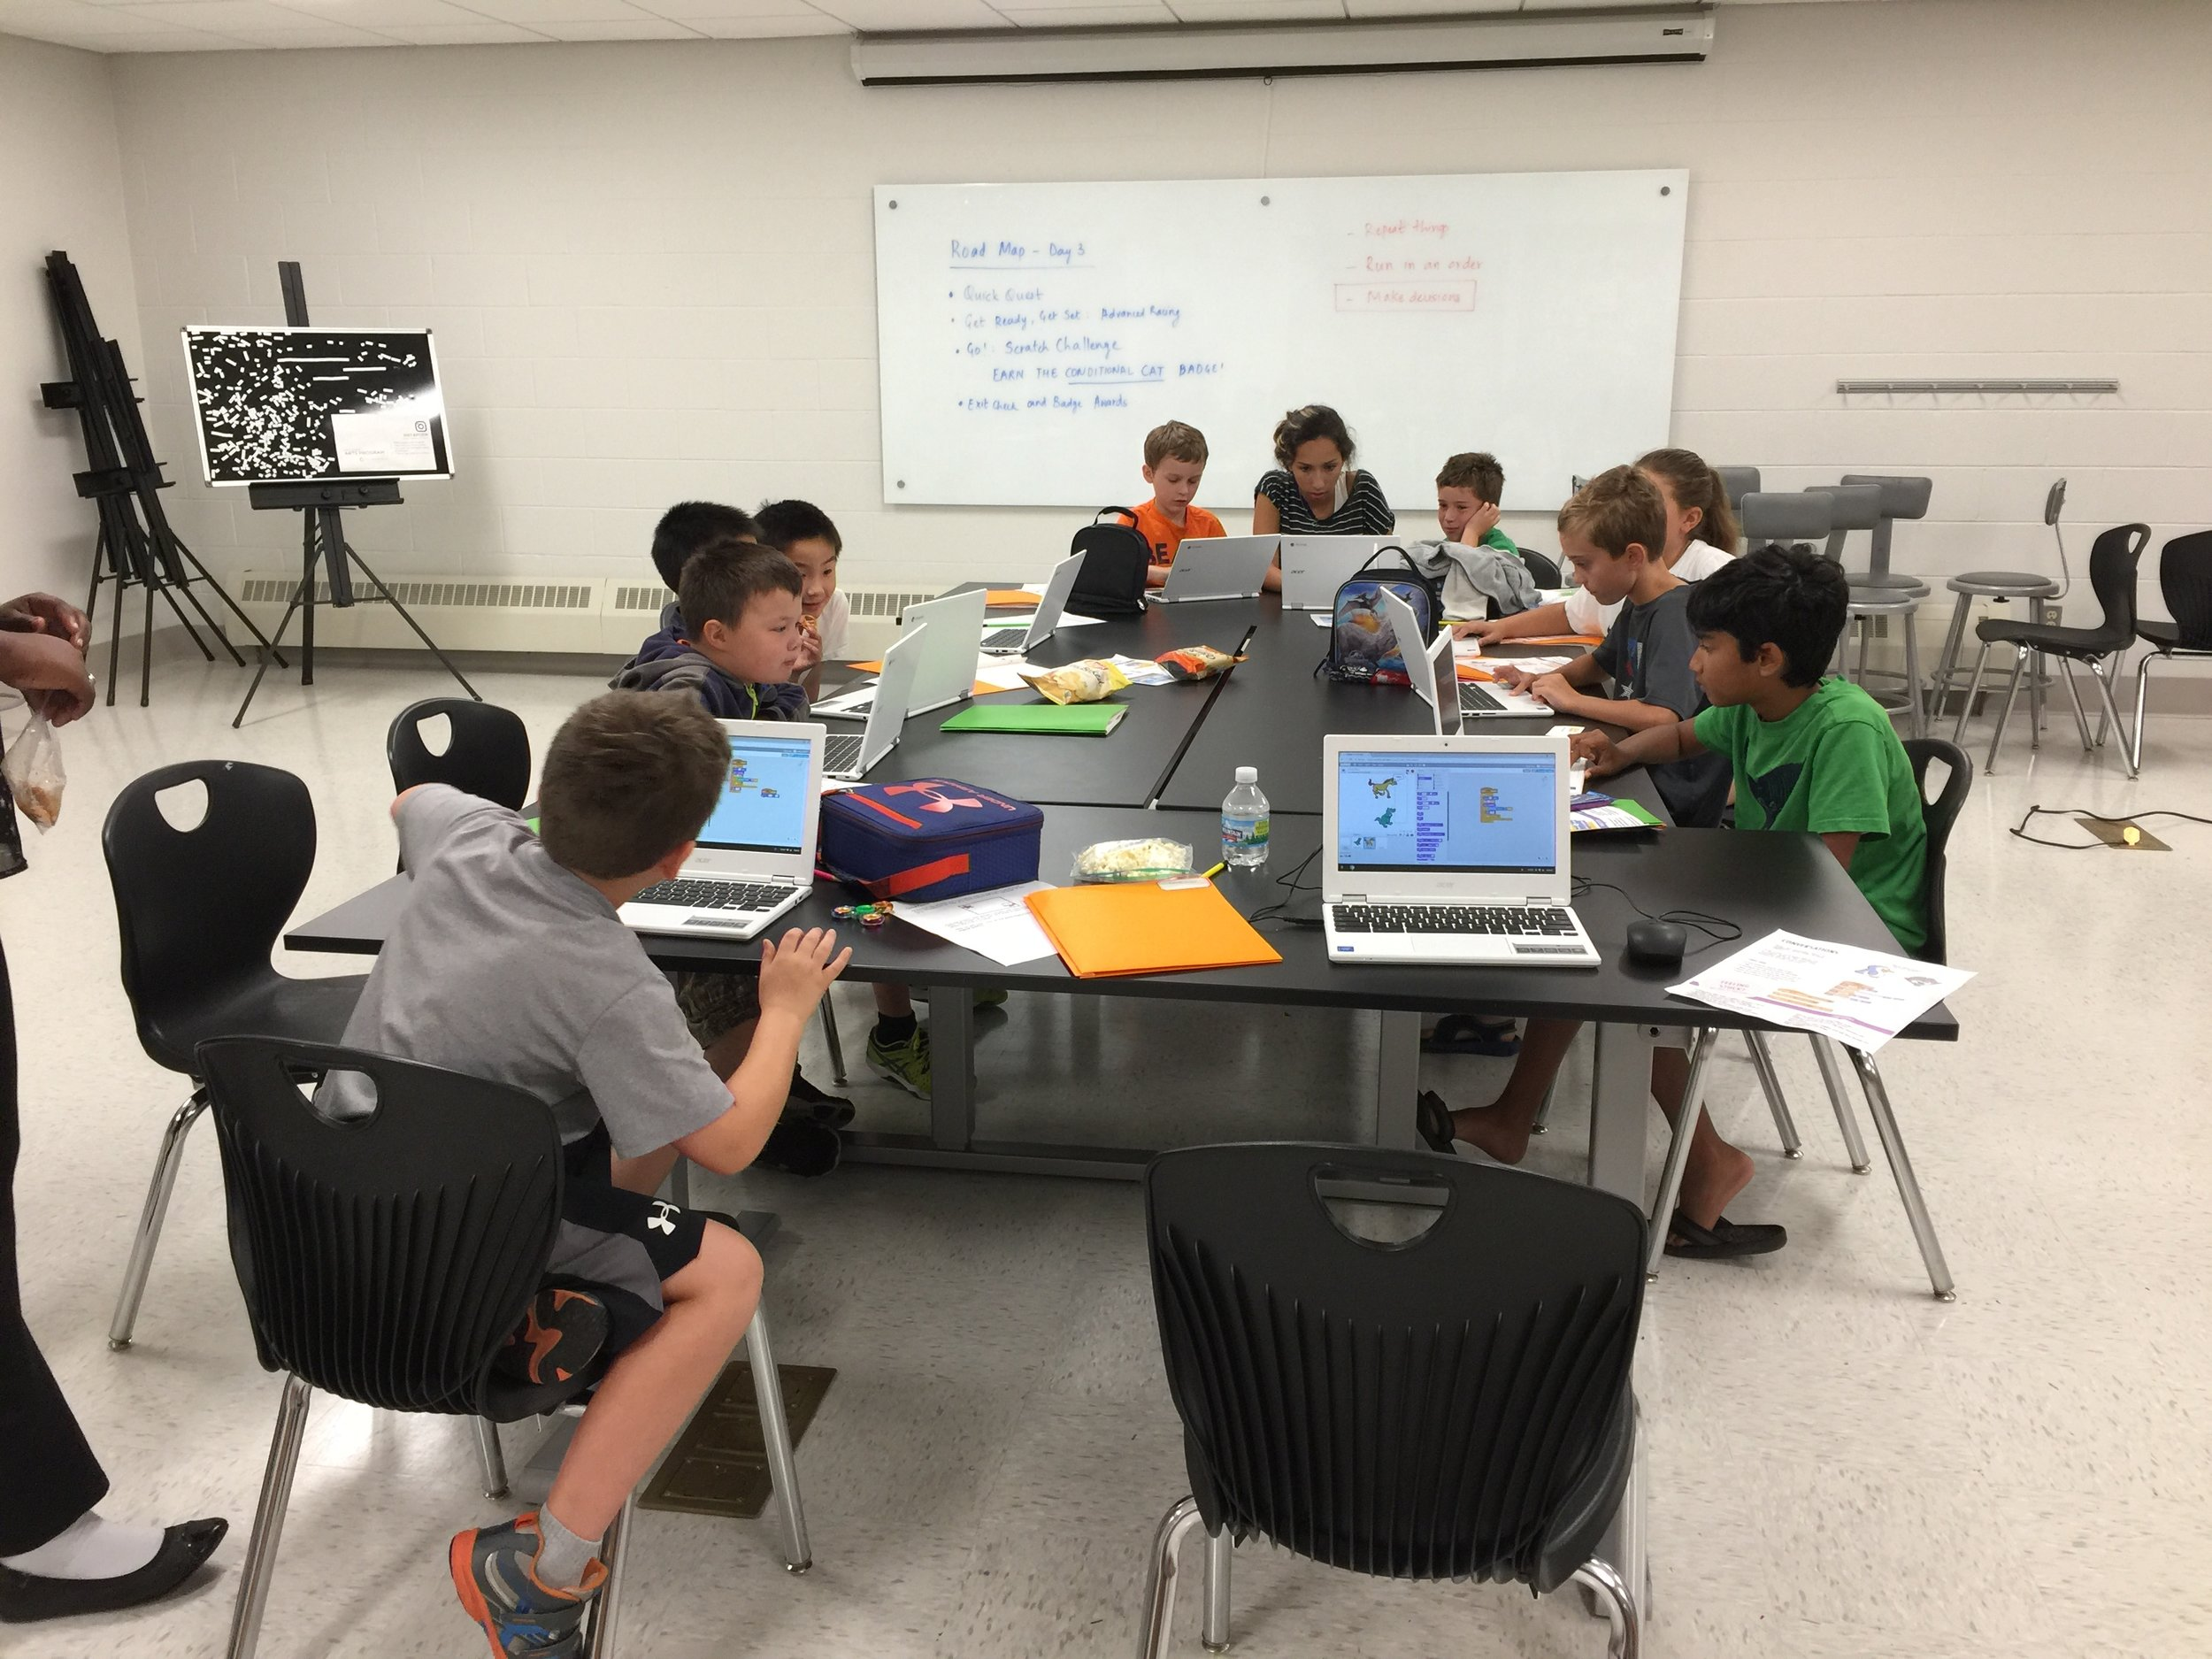 Summer Camp at Hinsdale Community House